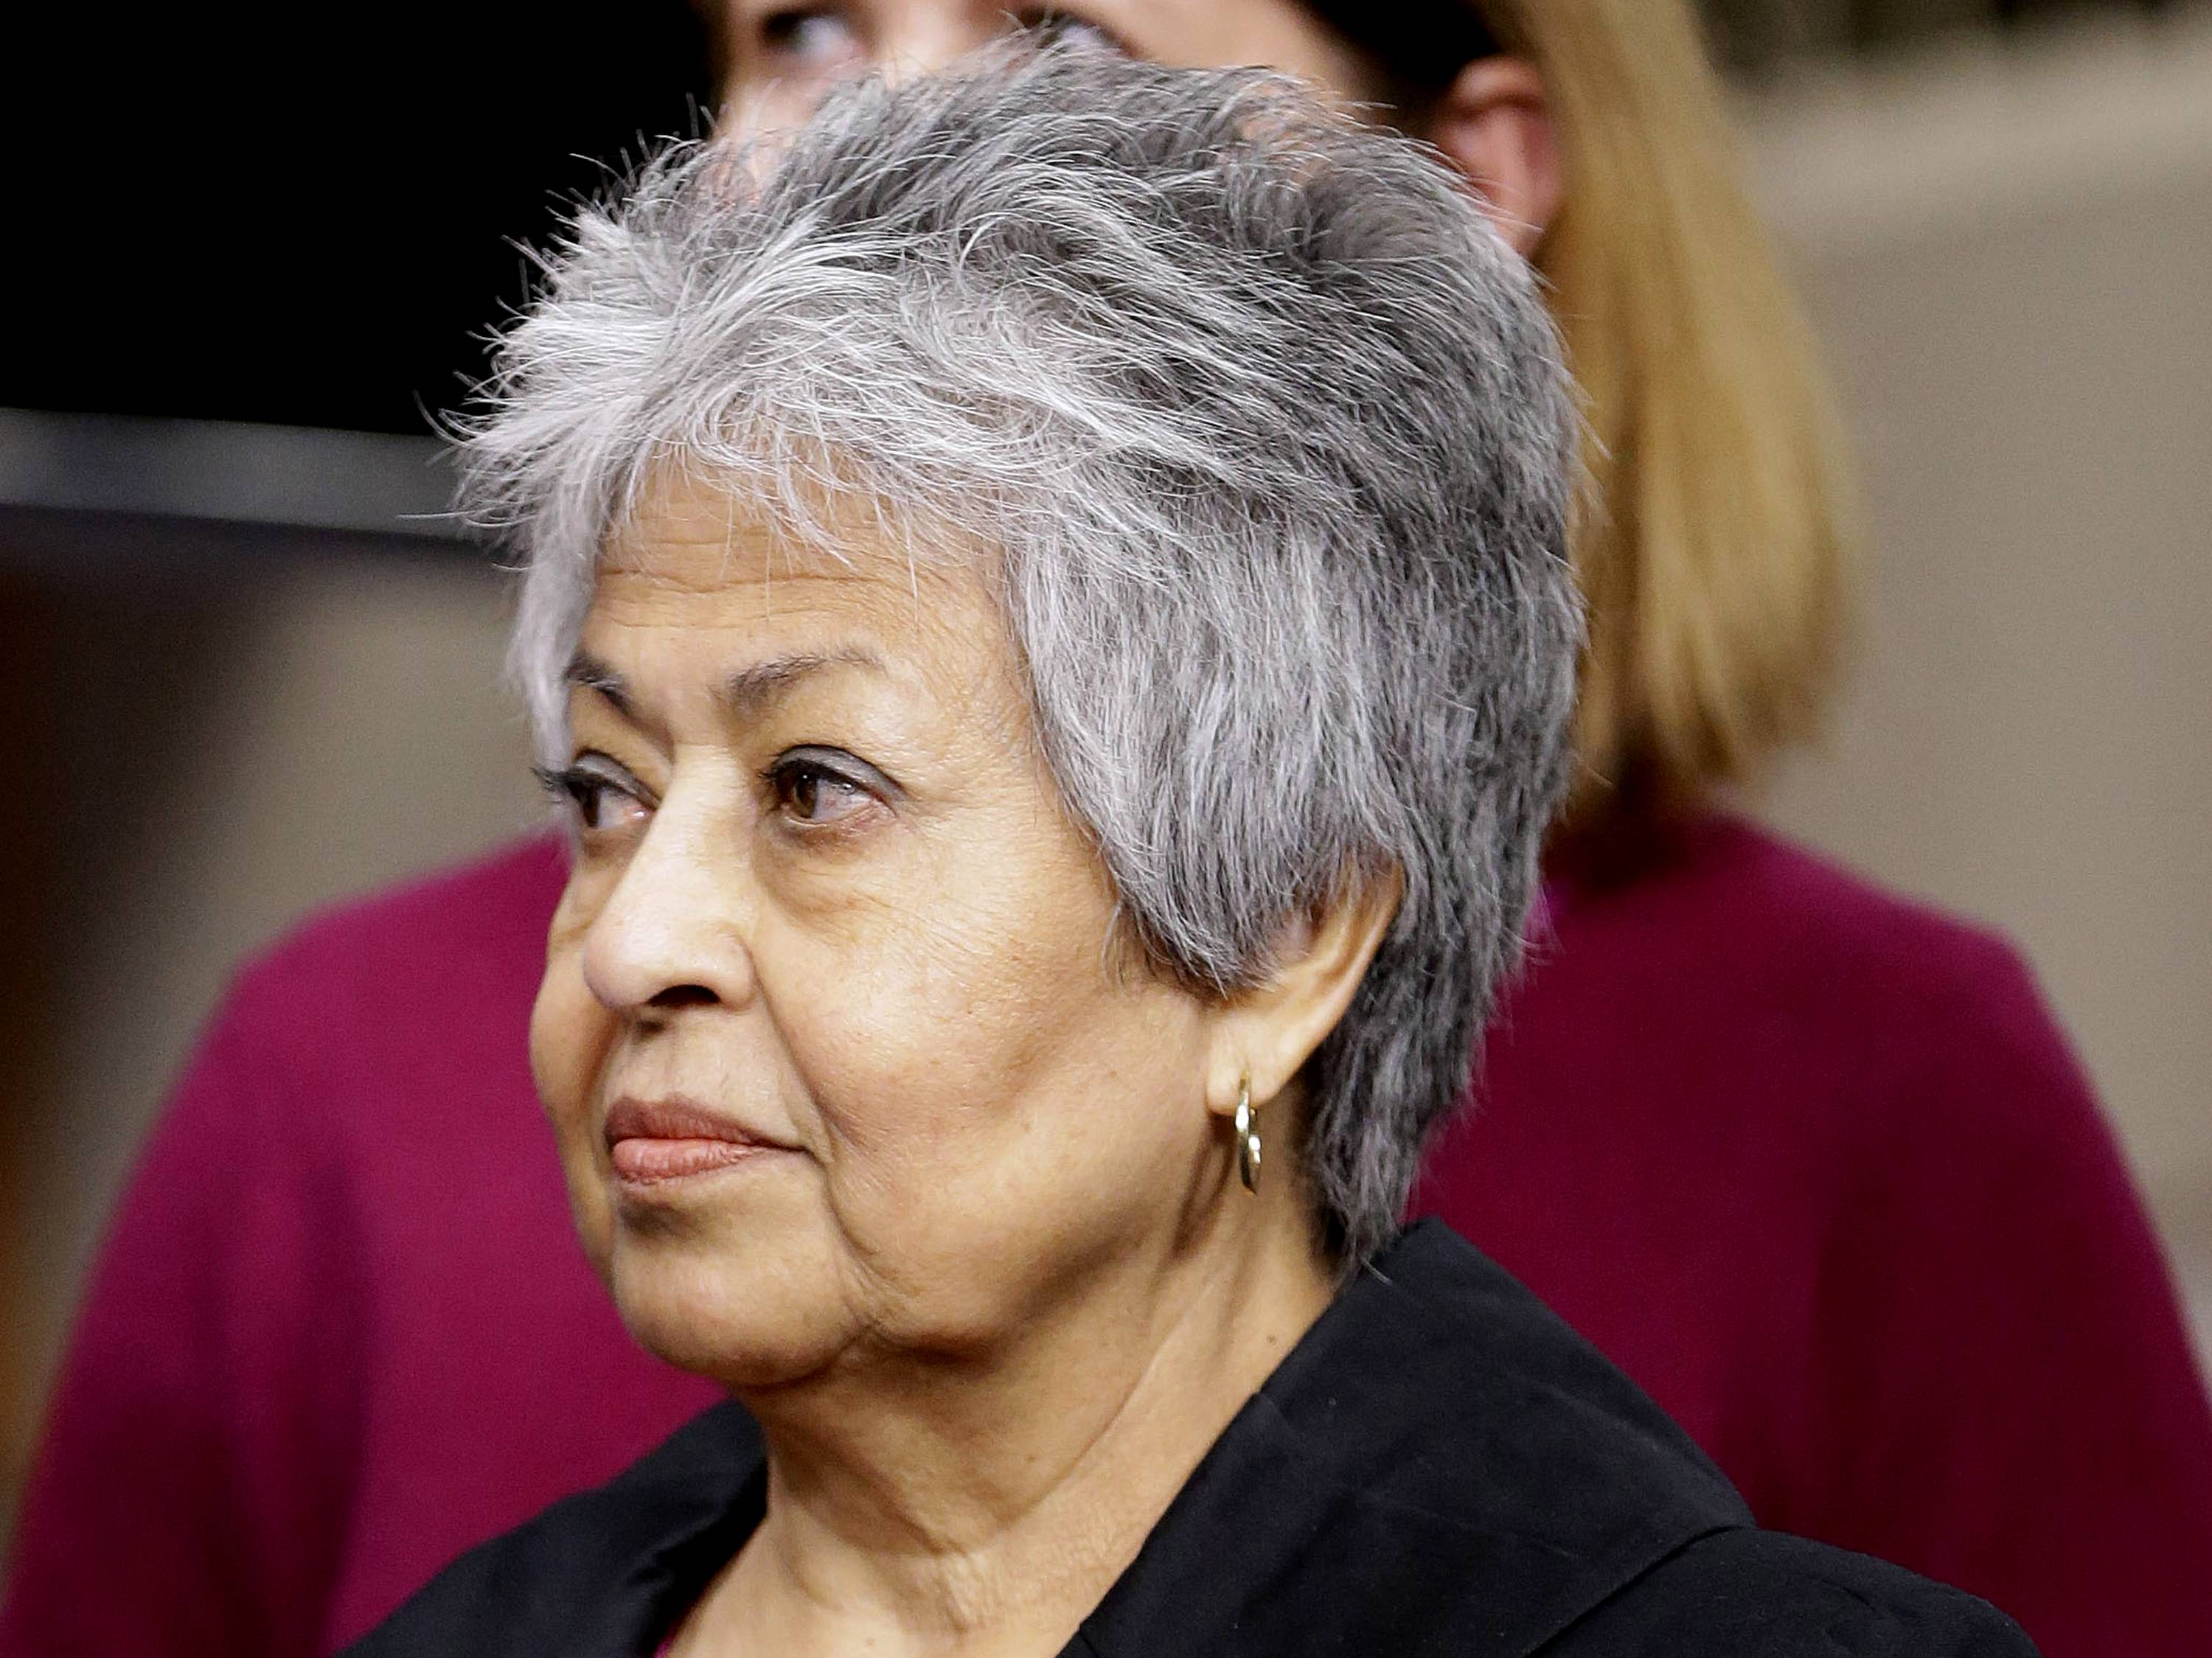 Then-Rep.-elect Gloria Negrete McLeod, a California Democrat. It took barely a year in Congress for McLeod to decide that she could do more for her California constituents by serving in county government.